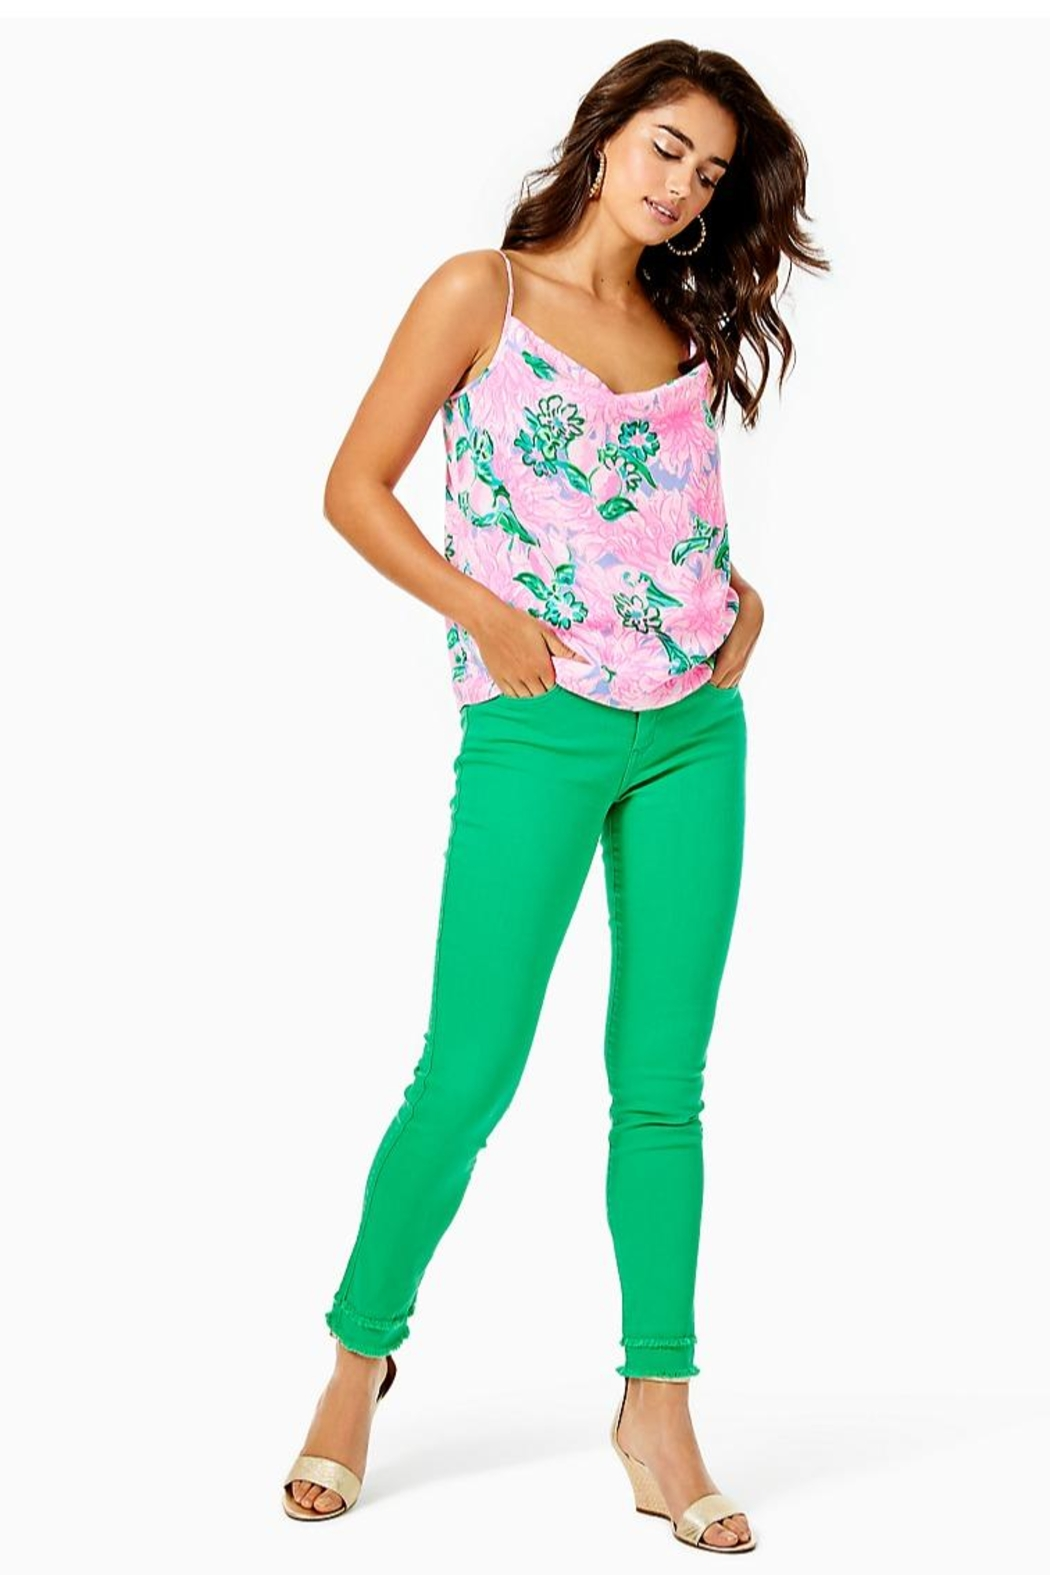 Lilly Pulitzer South Ocean Skinny-Jean - Main Image